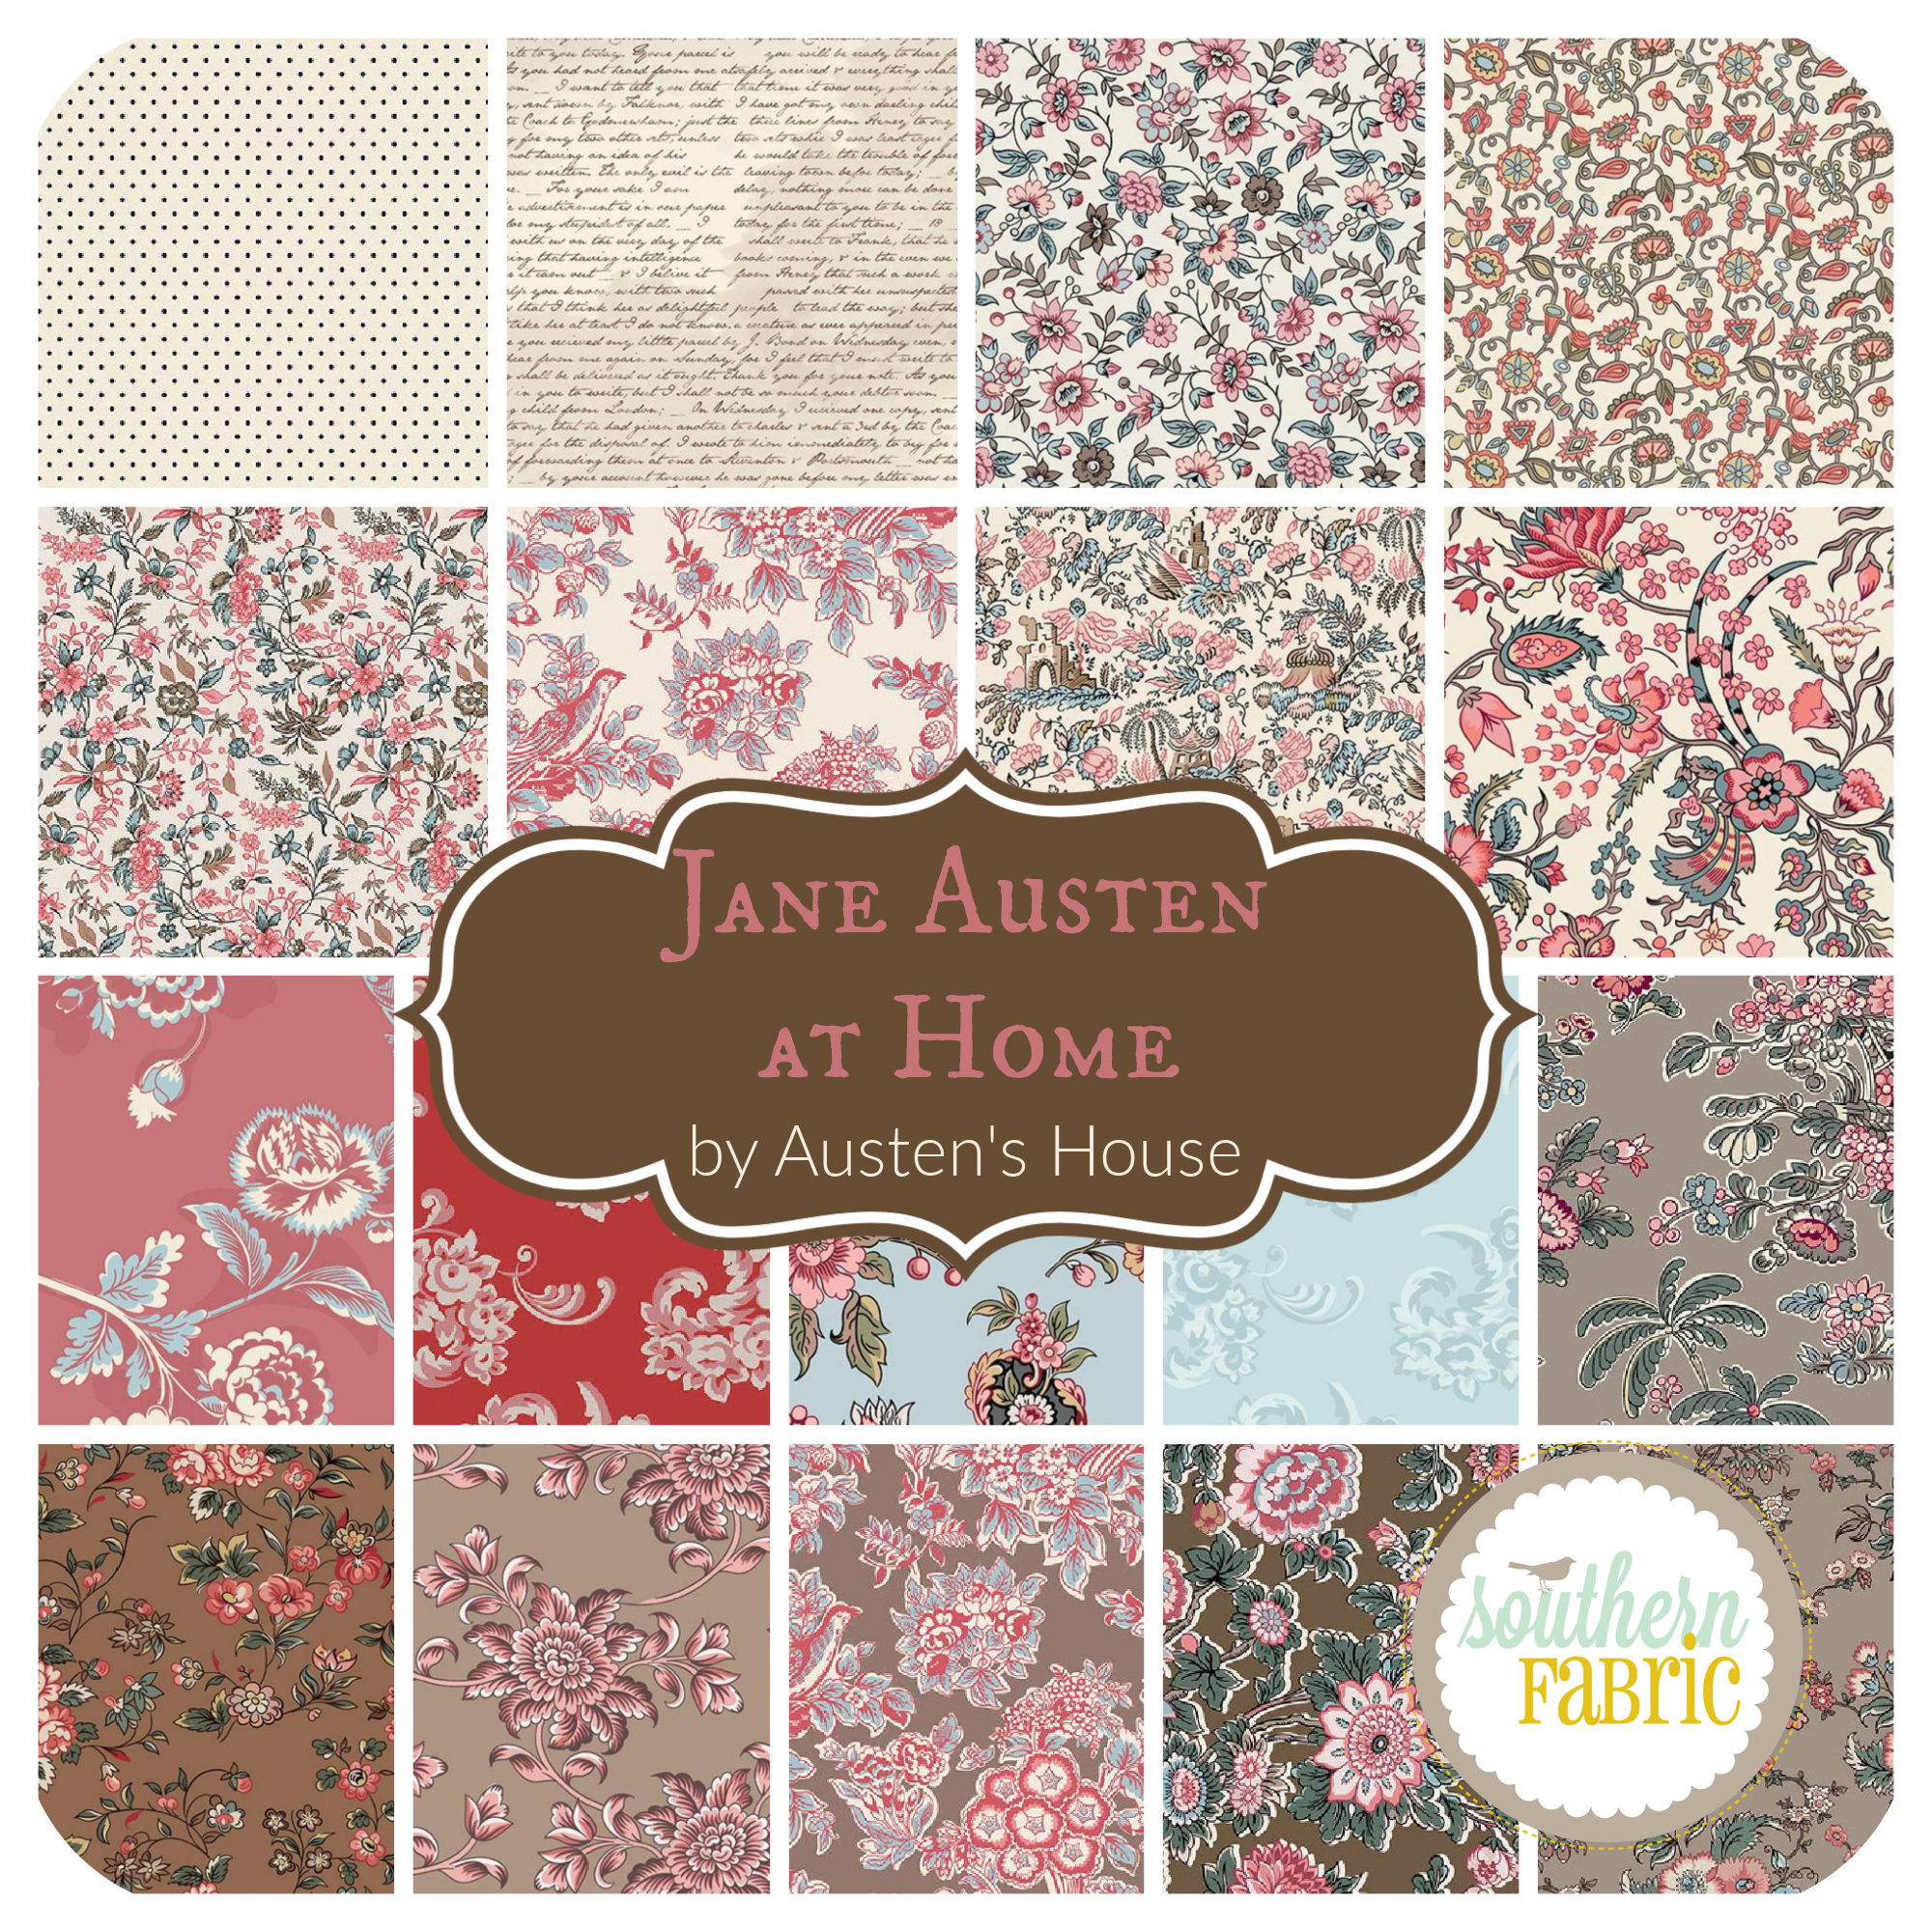 At Home by Jane Austen